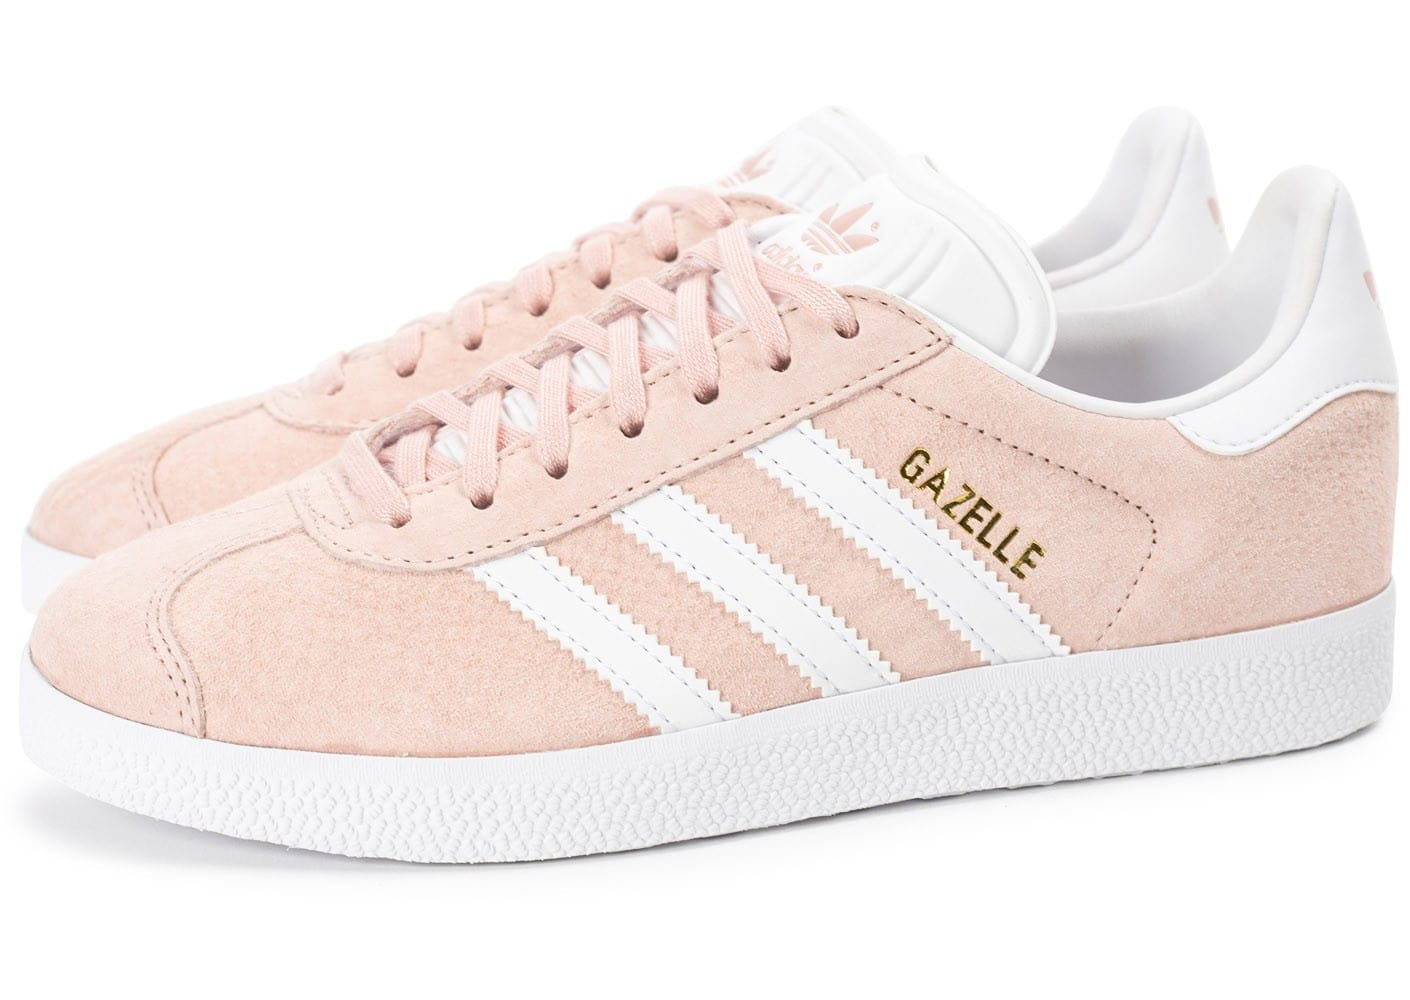 adidas Baskets en cuir Gazelle W Adidas Originals